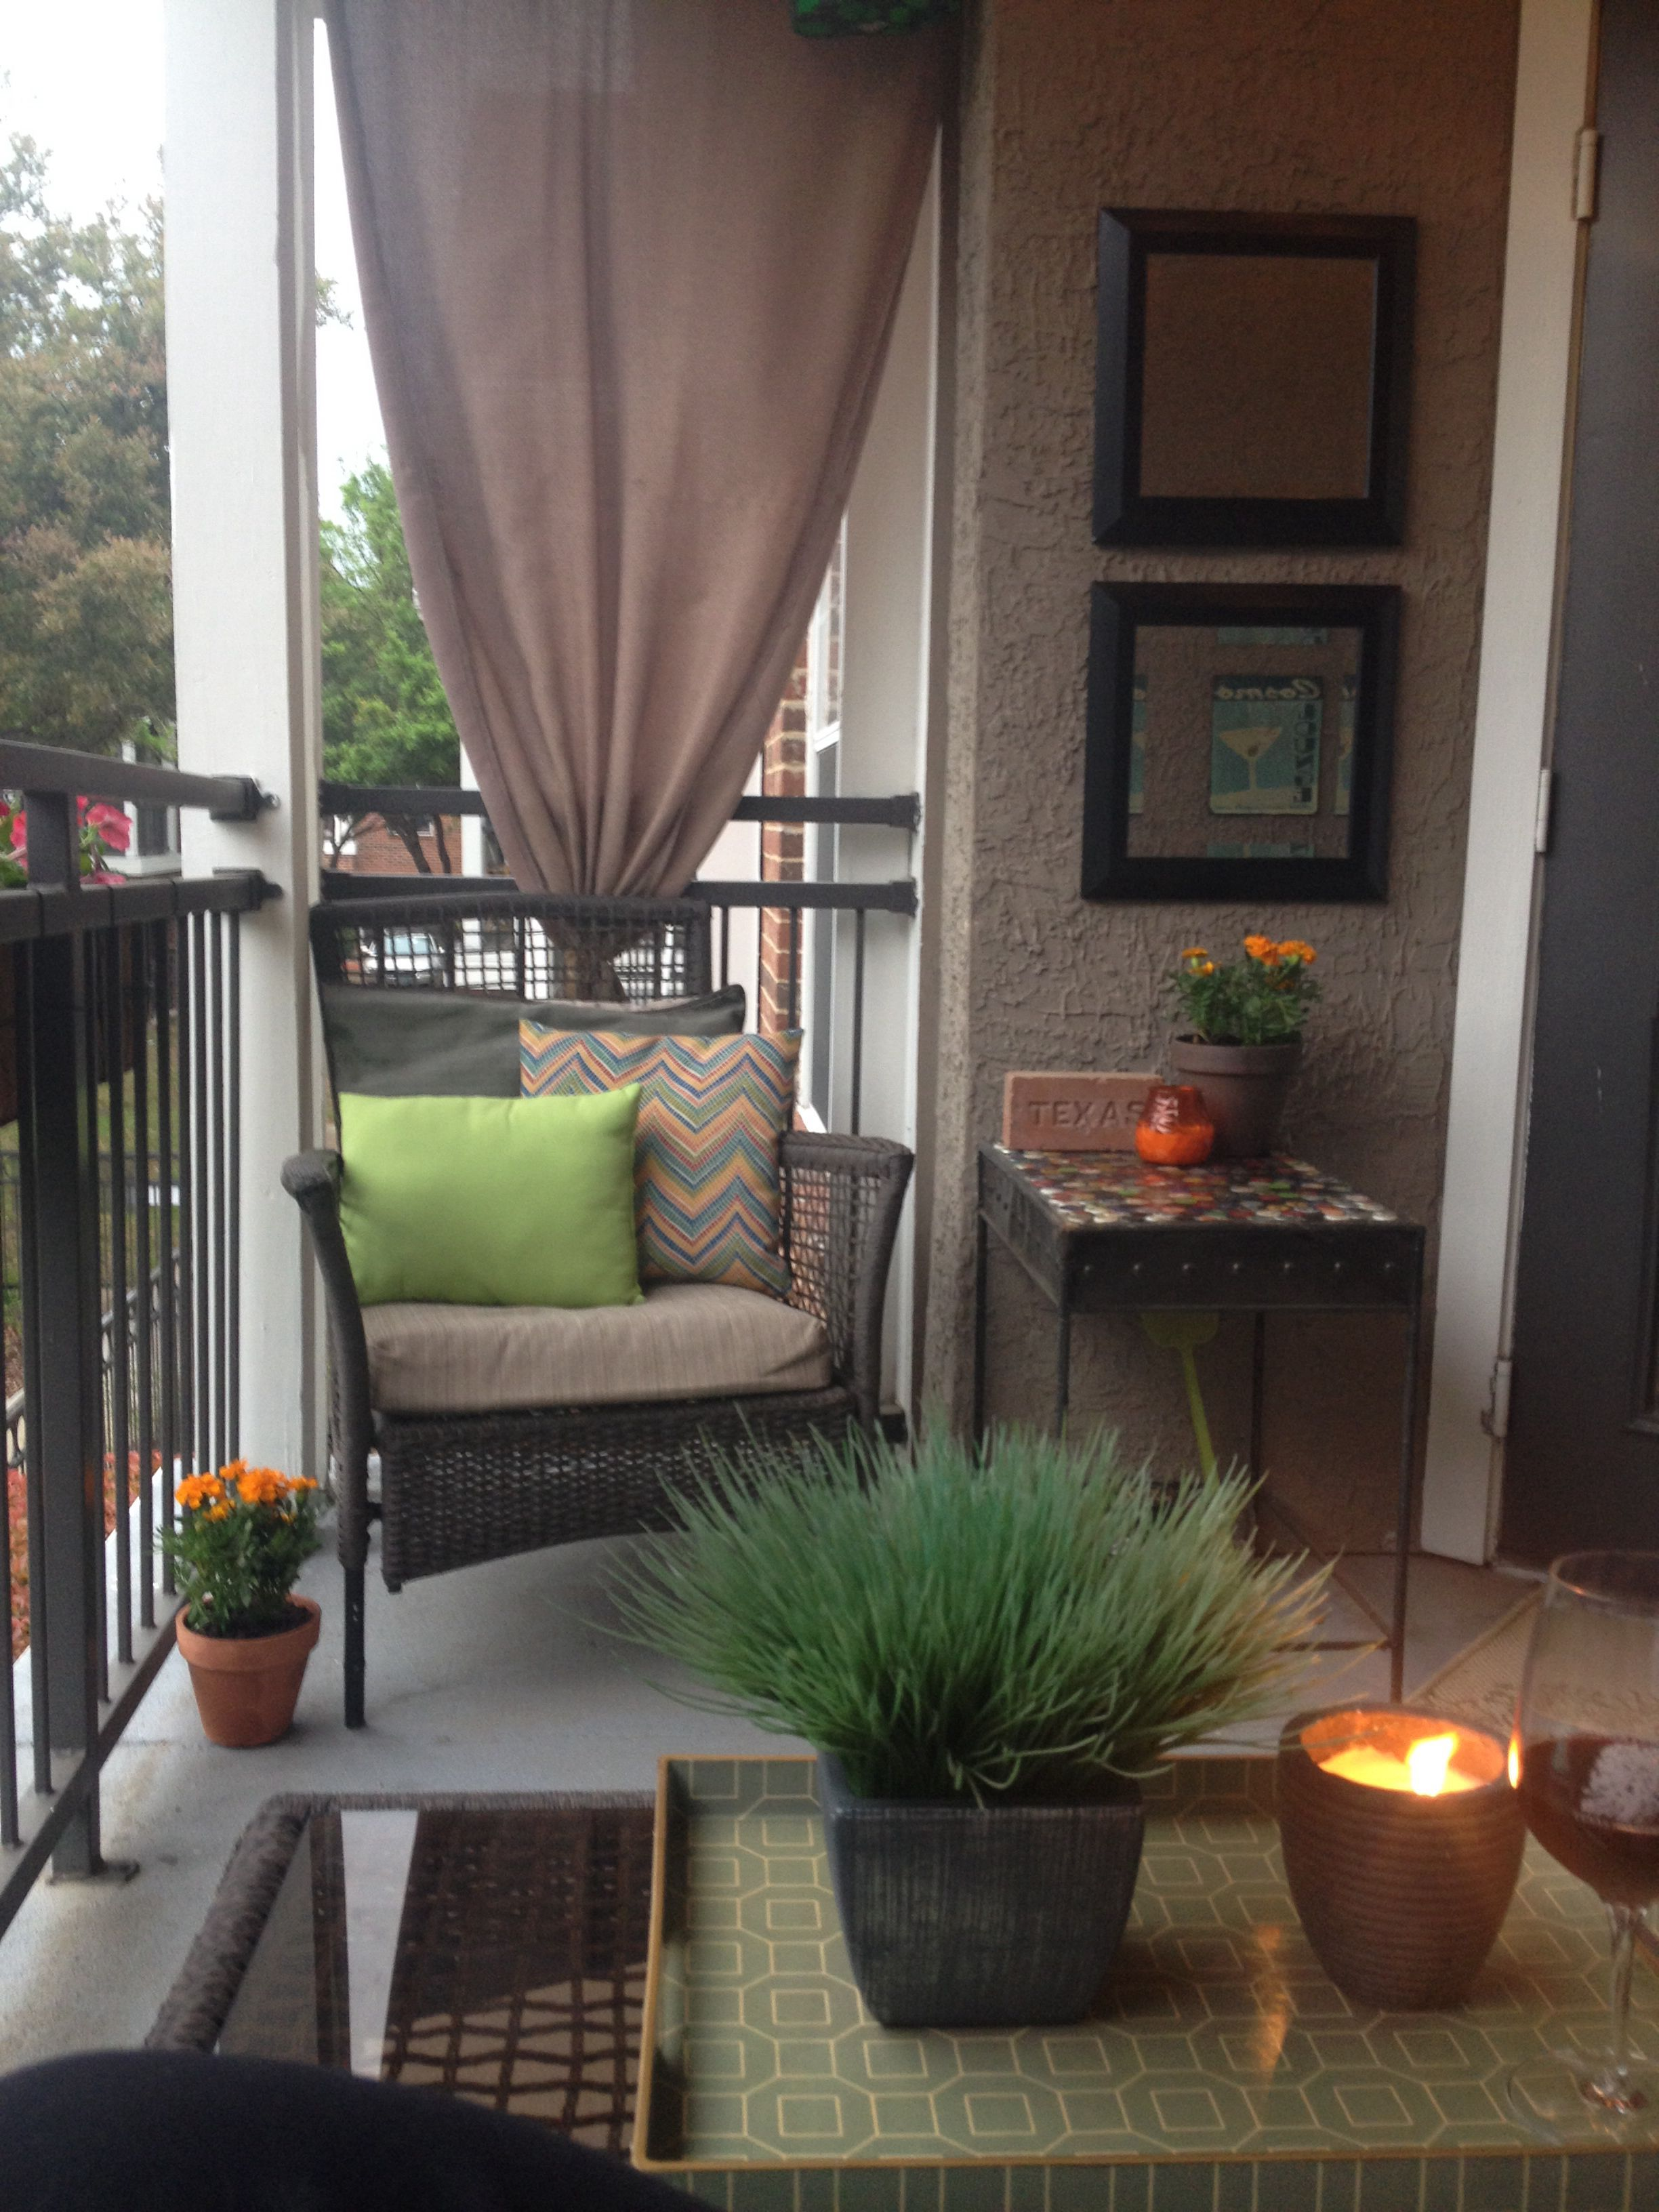 Patio Apartment Patio Patio Decor Apartment Patio Decor Apartment Balcony Decorating Balcony Decor